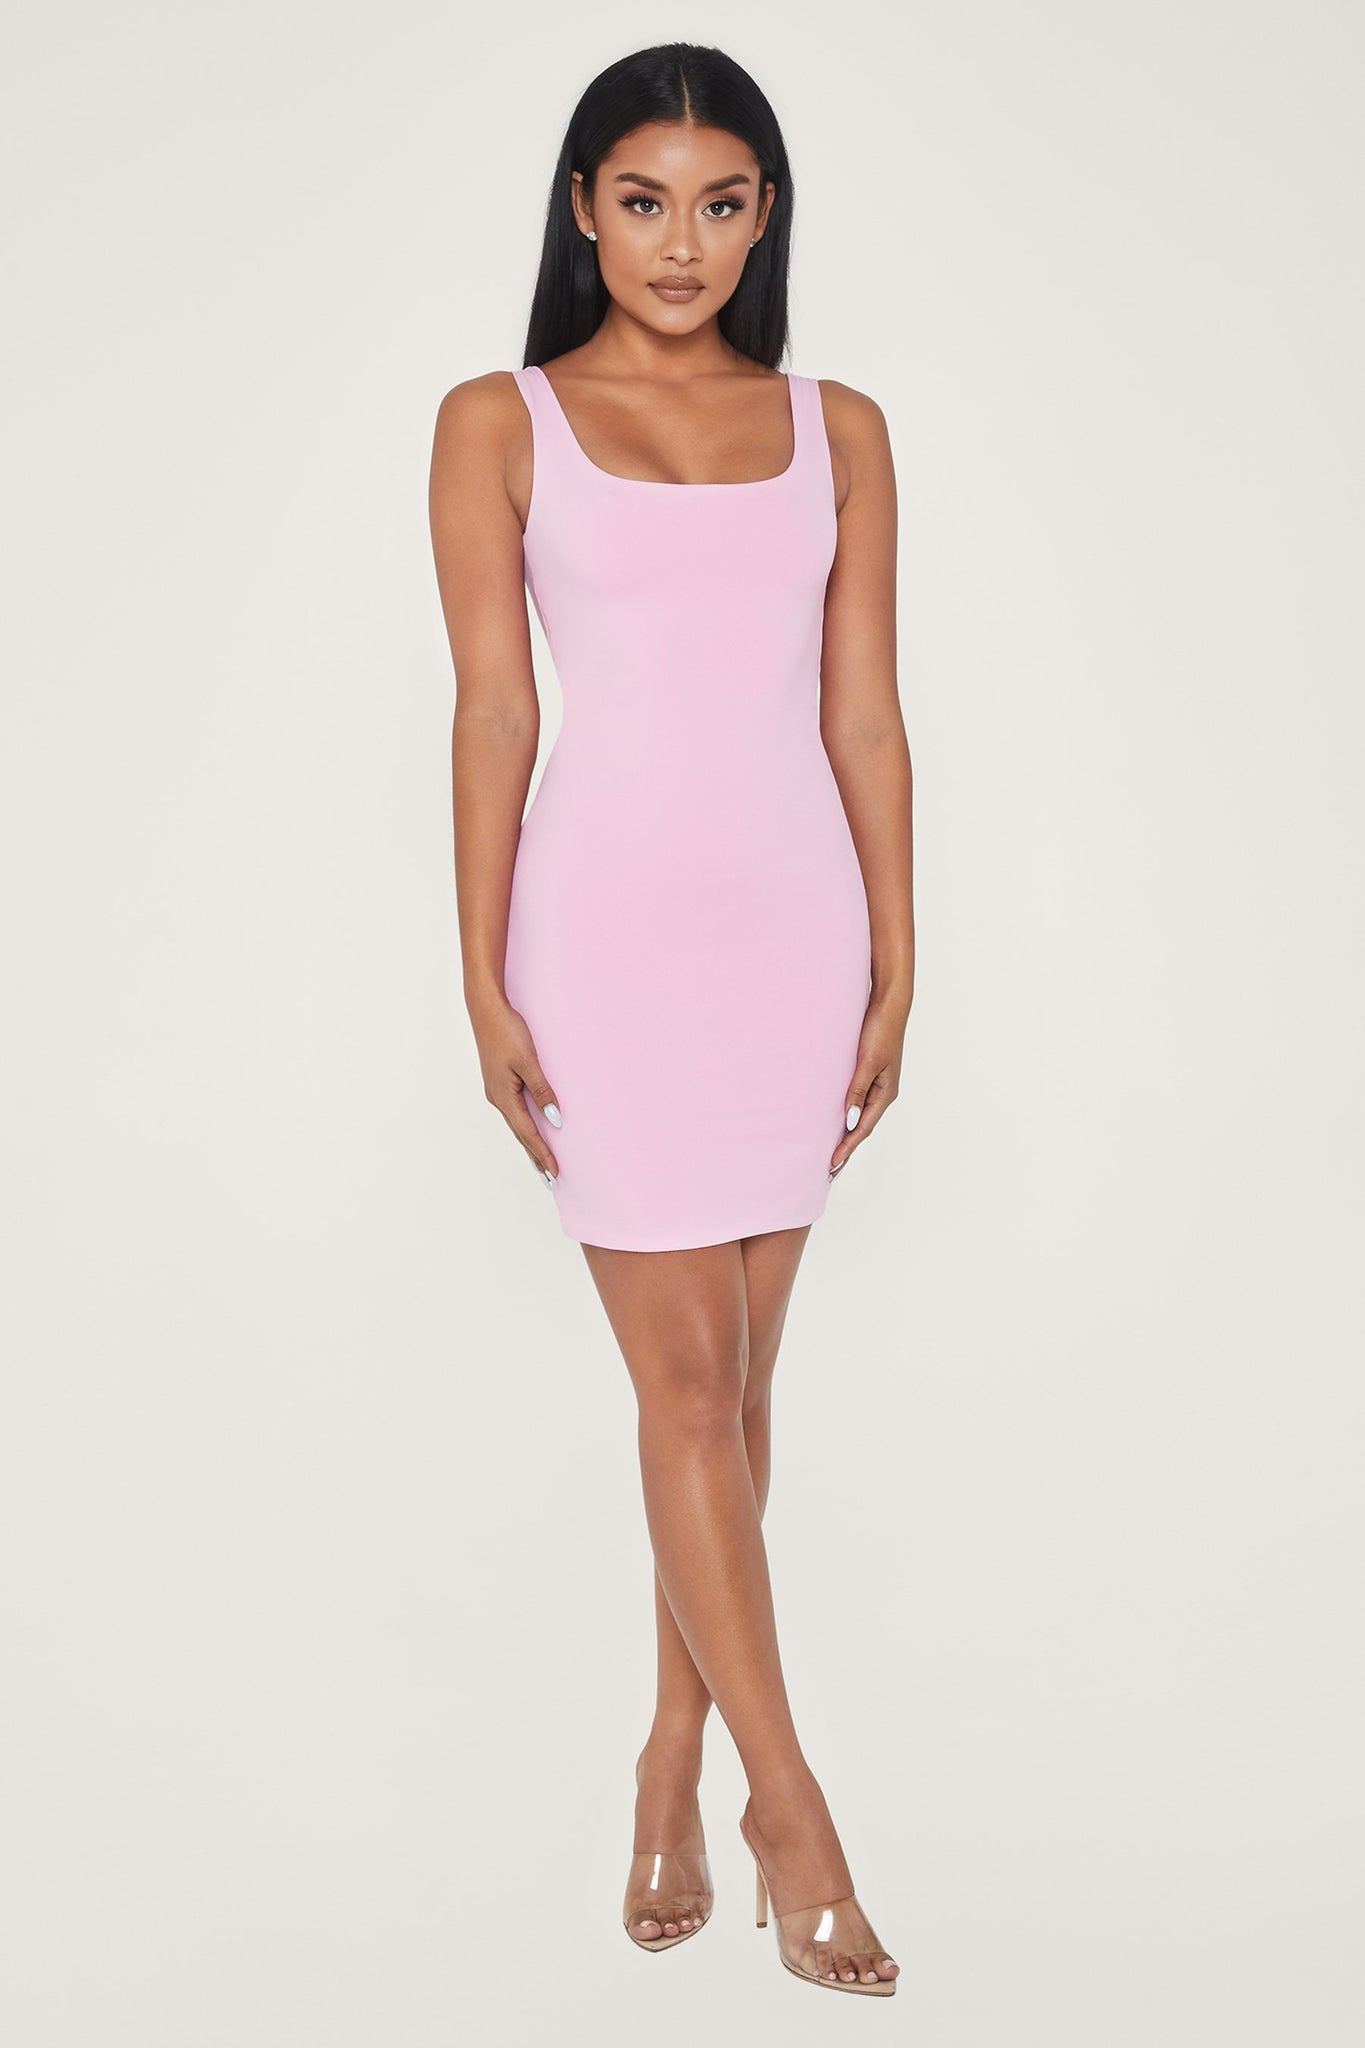 Estelle Thick Strap Square Neck Mini Dress - Pink - MESHKI